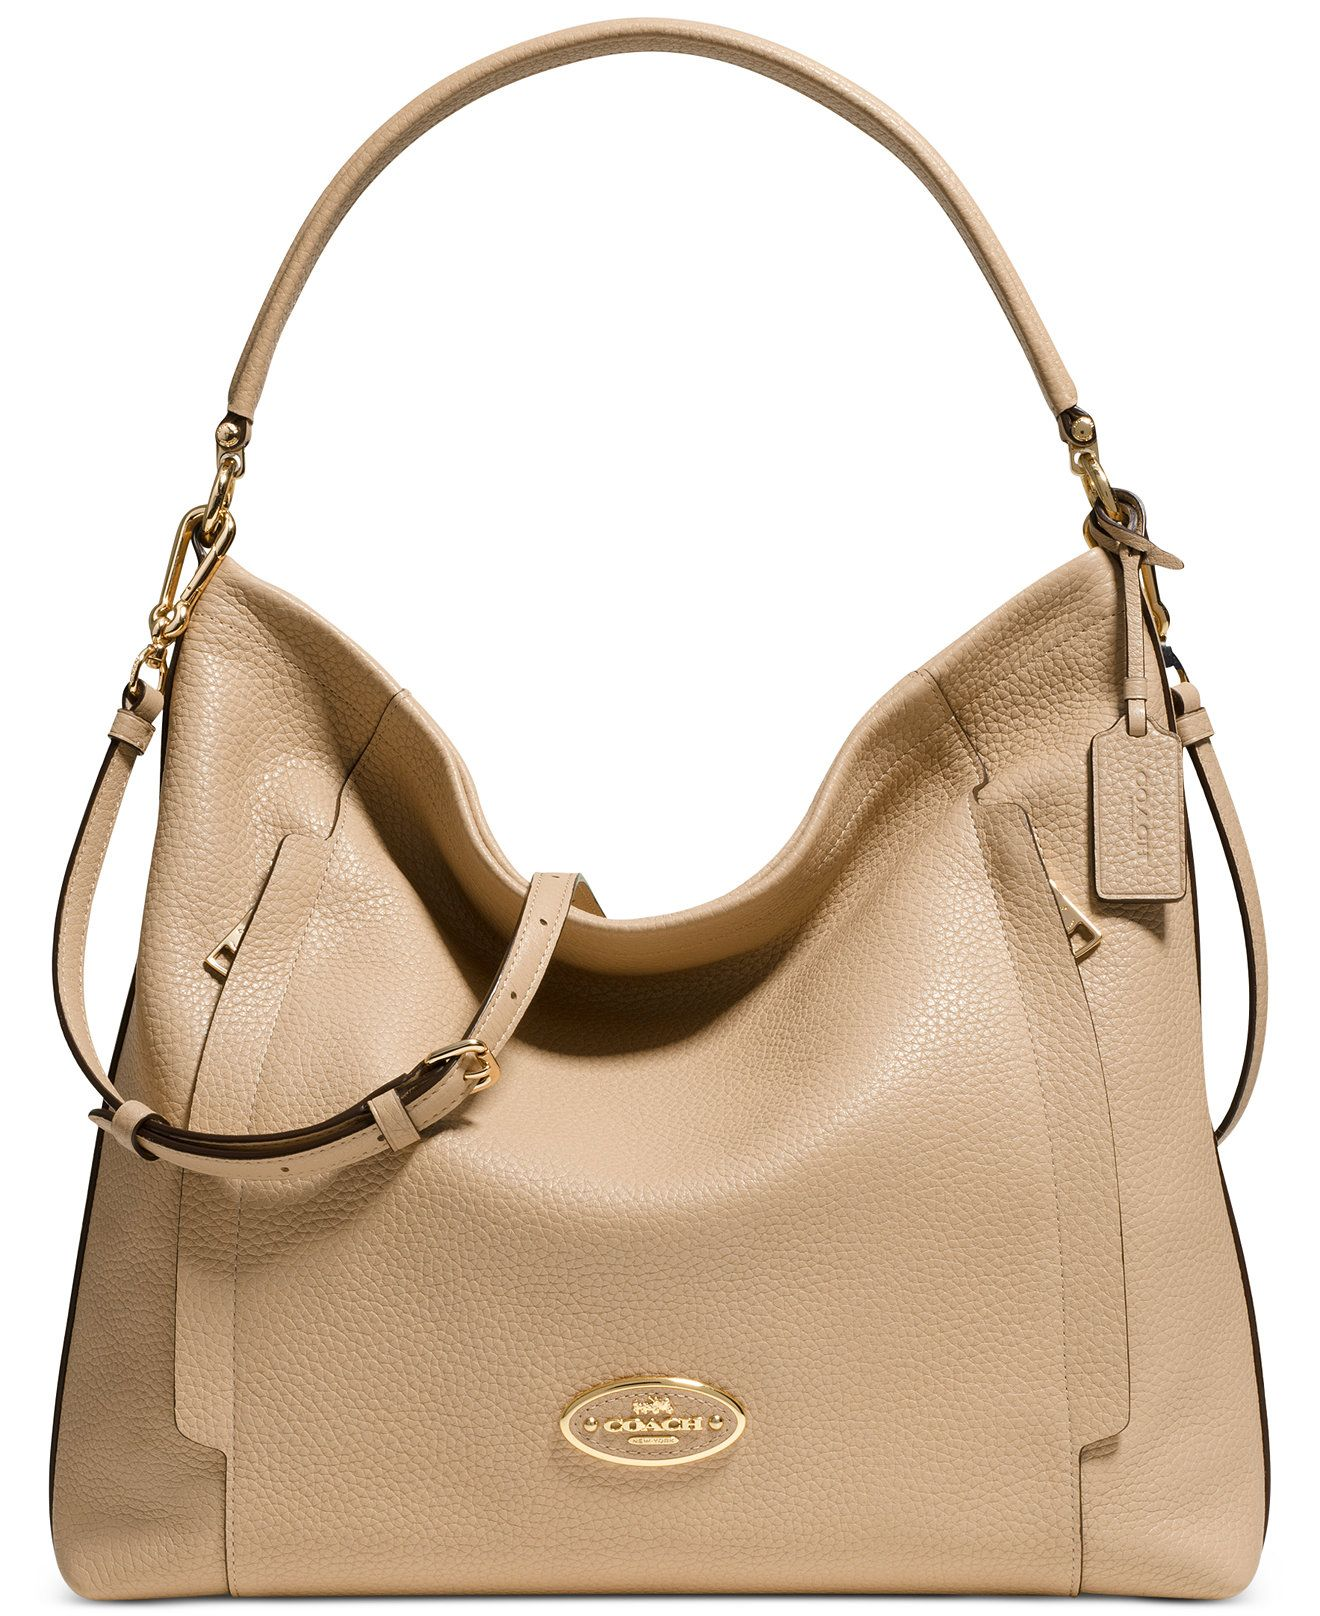 COACH LARGE SCOUT HOBO IN PEBBLE LEATHER Coach Handbags